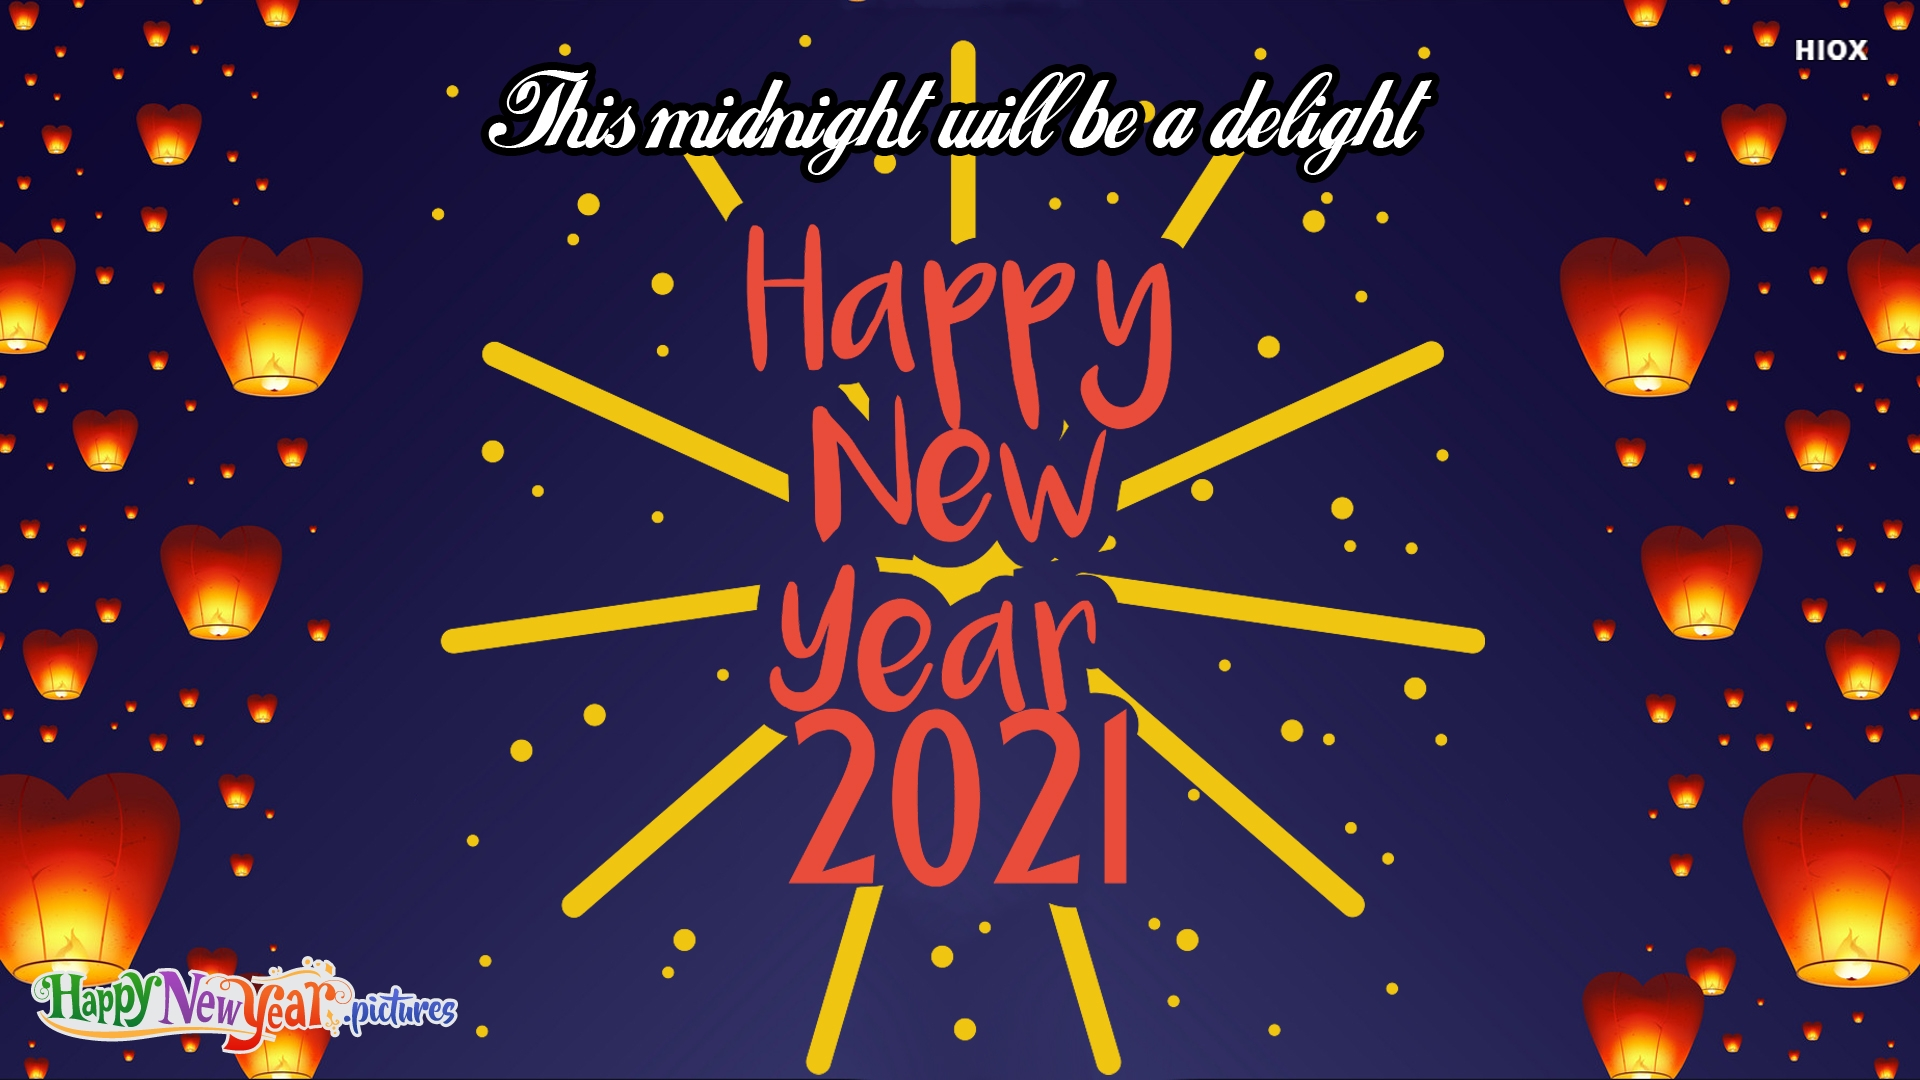 This Midnight Will Be A Delight. Happy New Year.